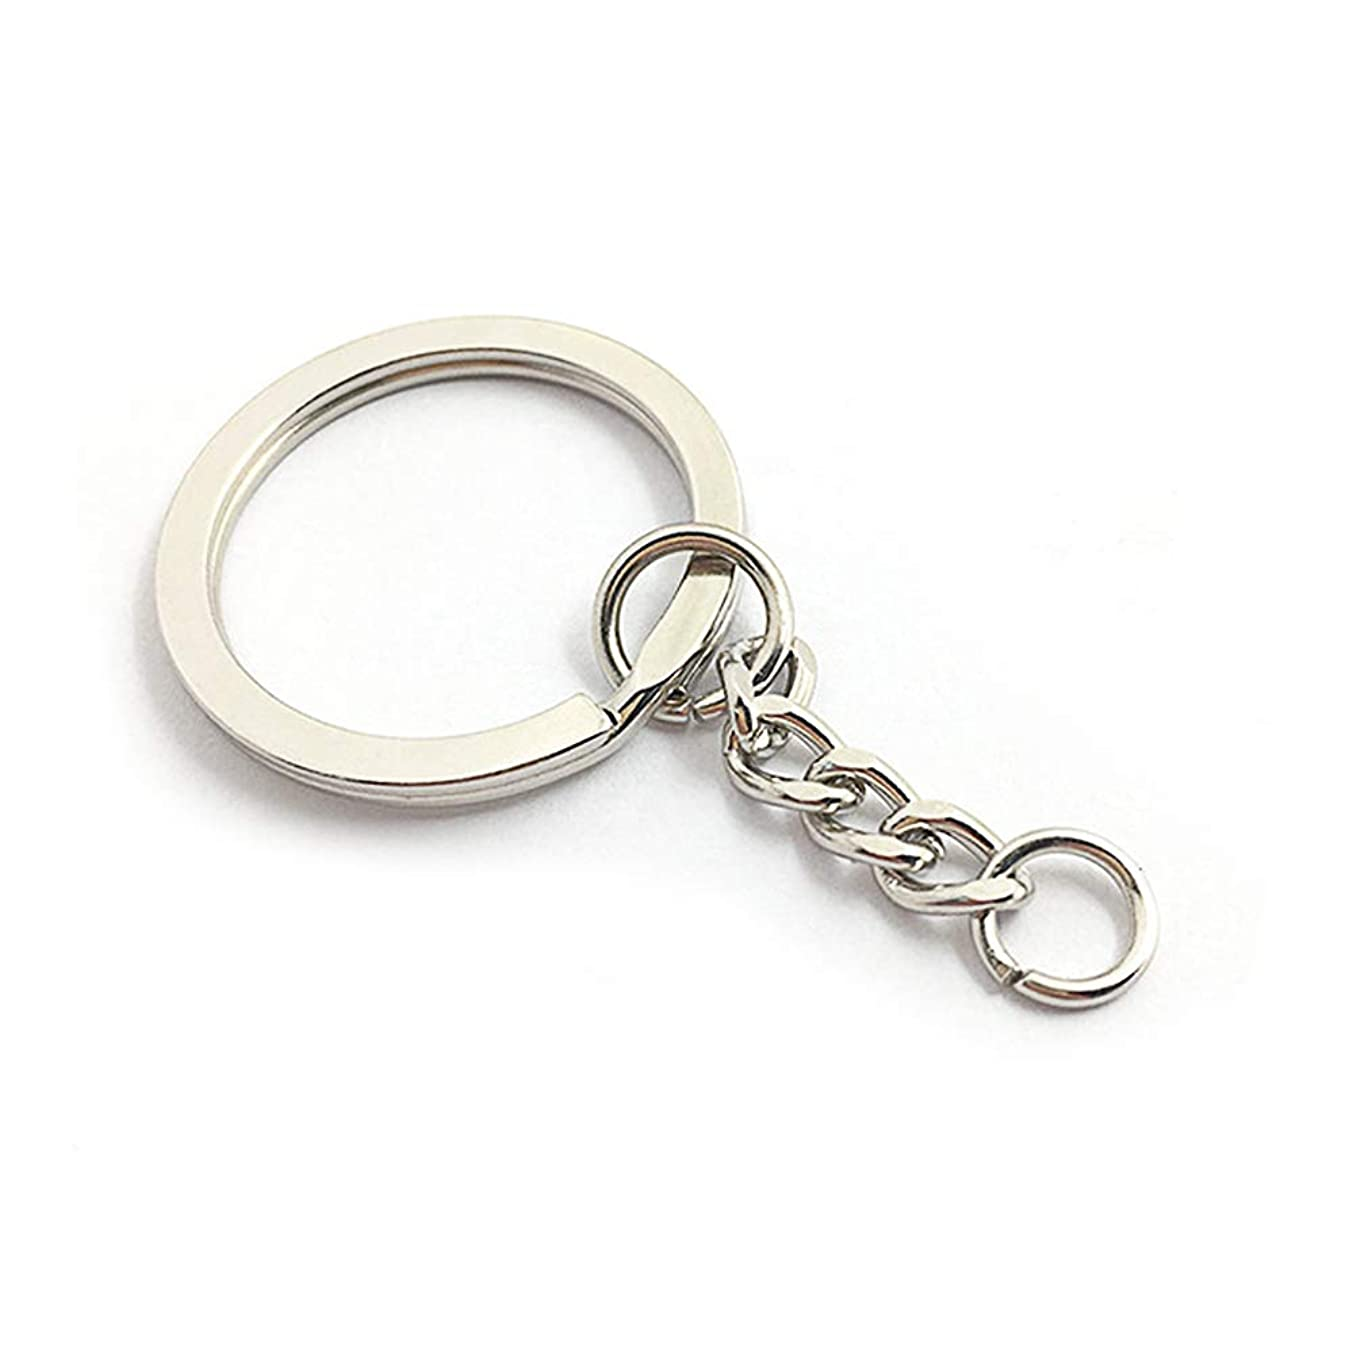 LAKIND 50Pcs Split Key Chain Rings with Chain,Metal Split Ring Key Chain Jump Rings for DIY Arts Crafts(50-Pack)